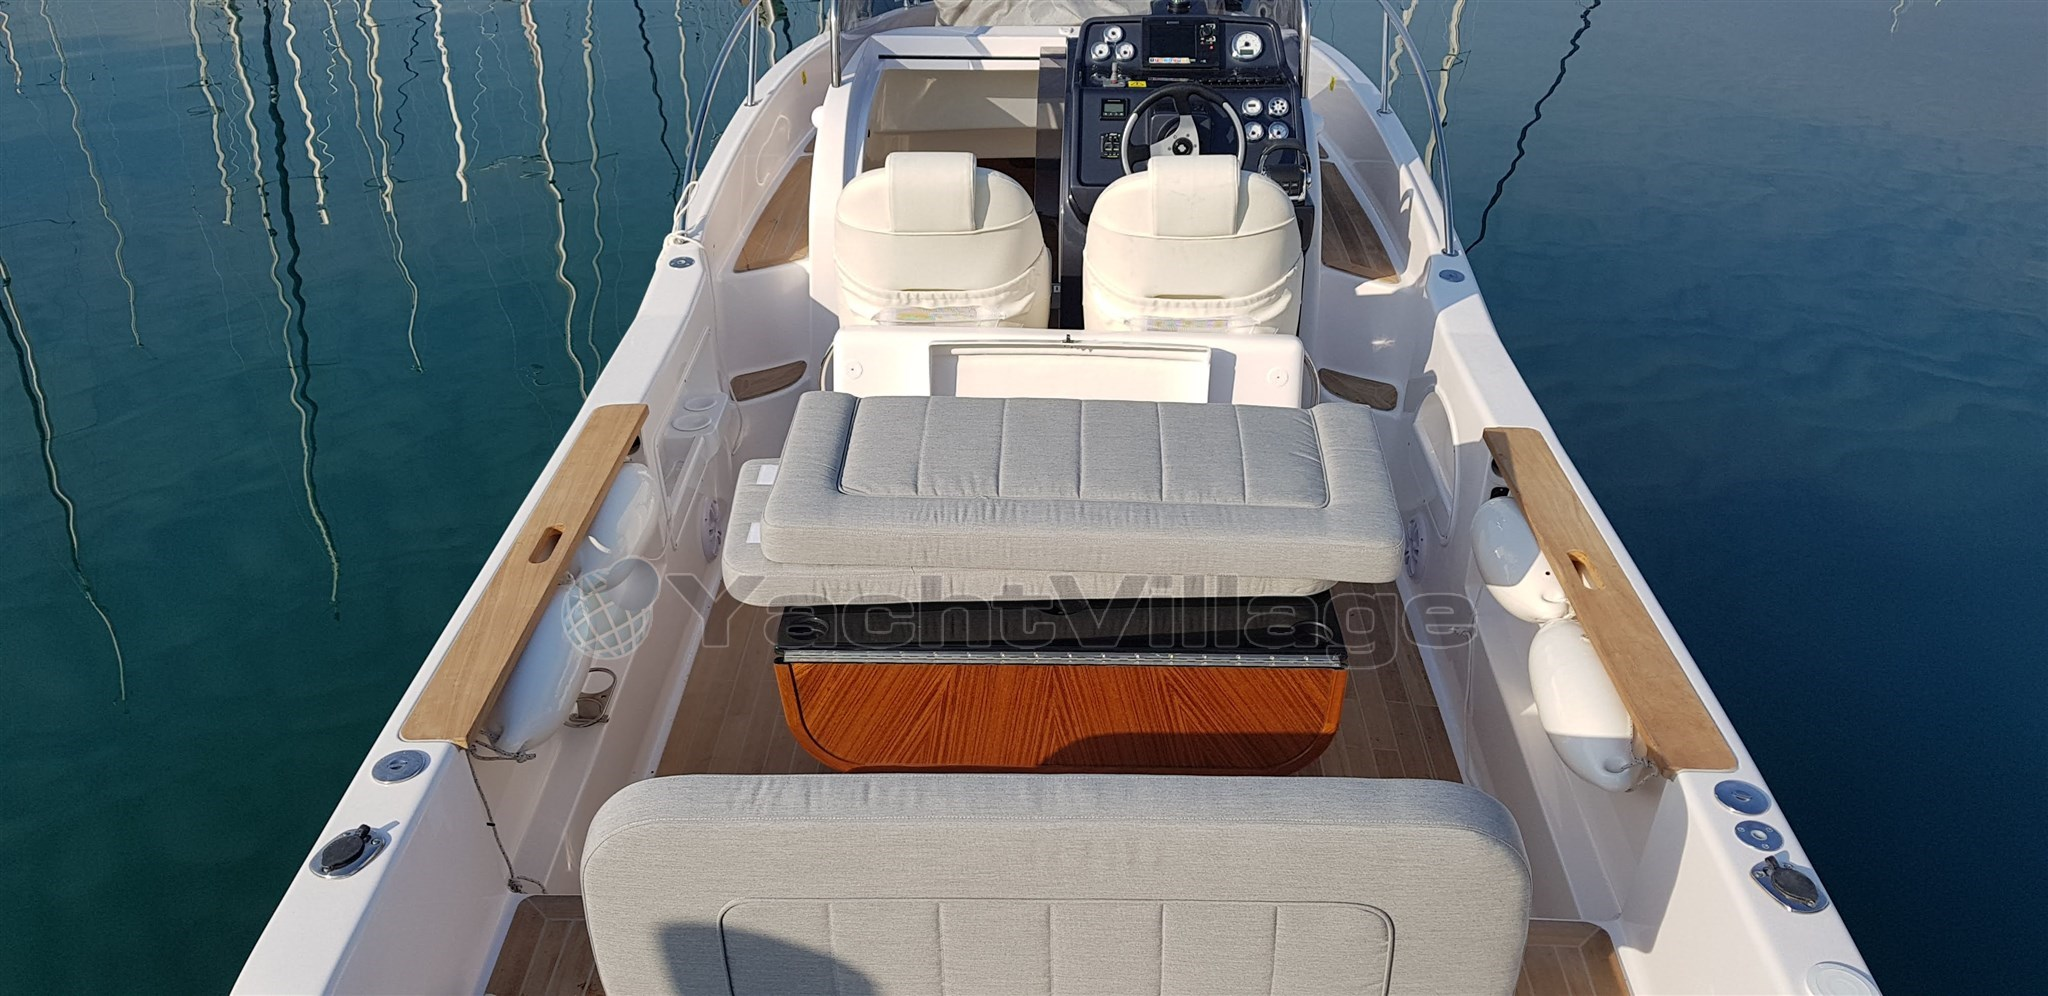 Focus Yacht Marine Fsd 23, new motorboat for sale in (Italy)